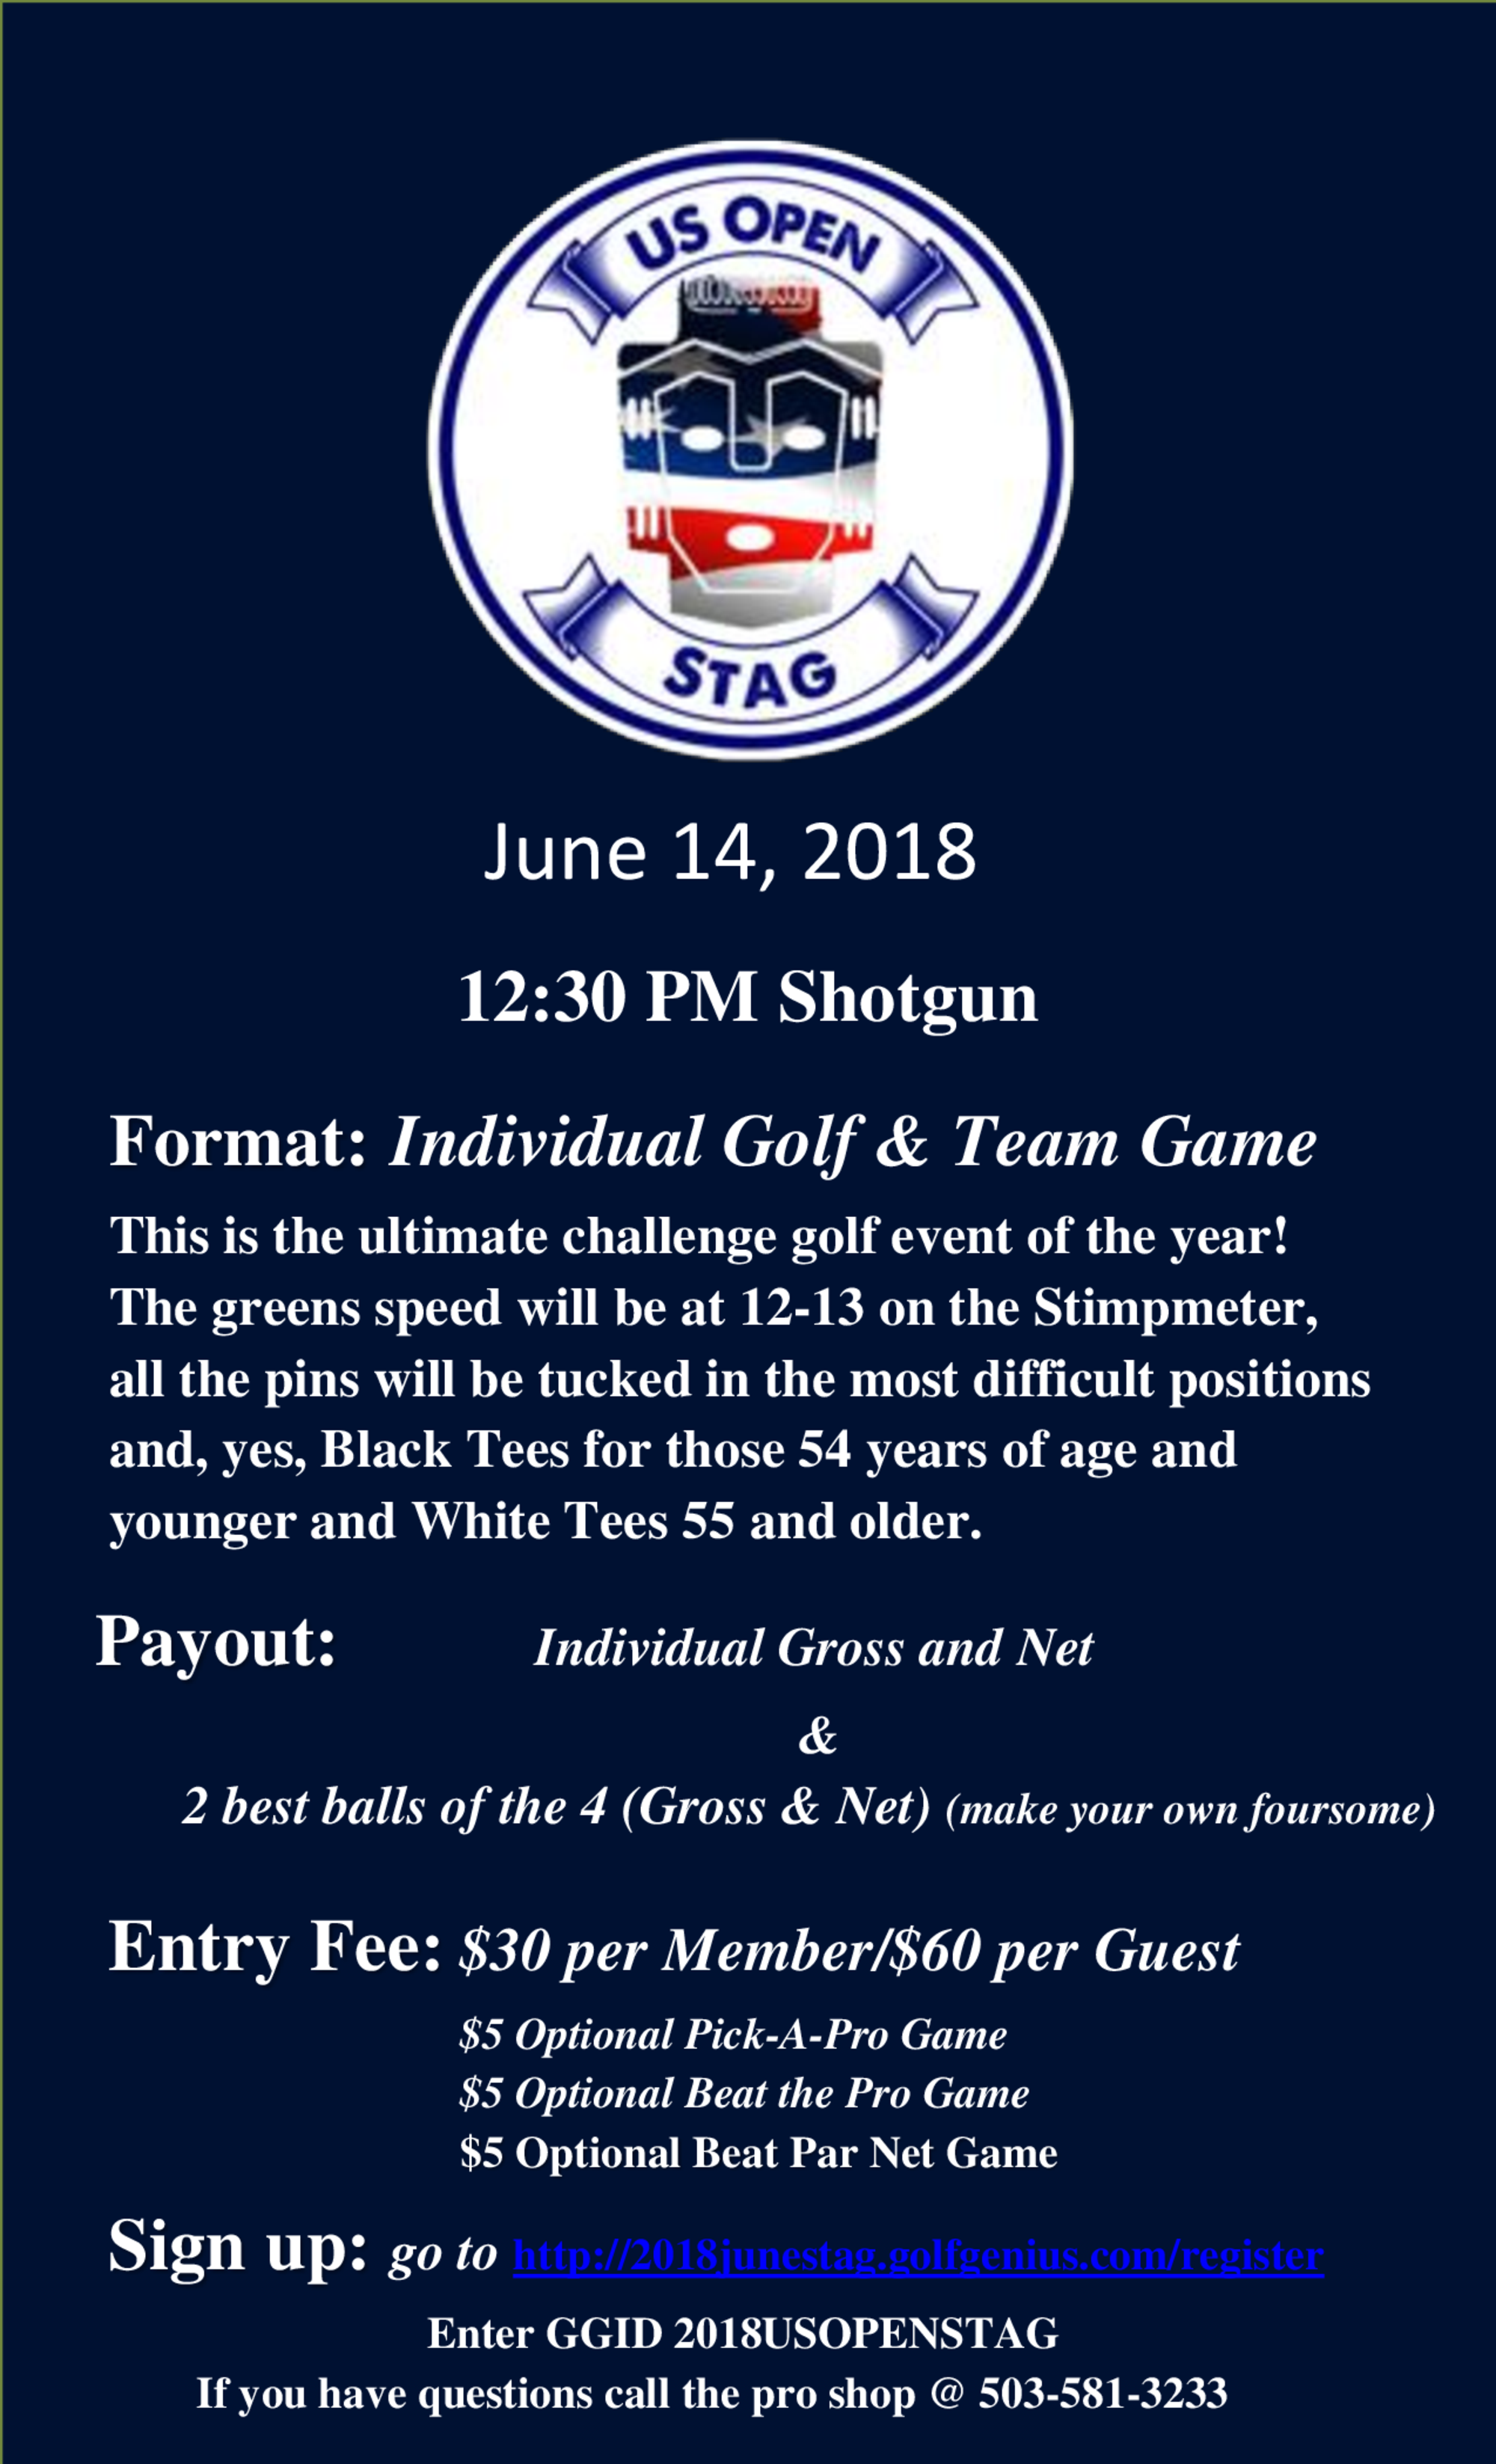 2018 new us open stag flyer 1